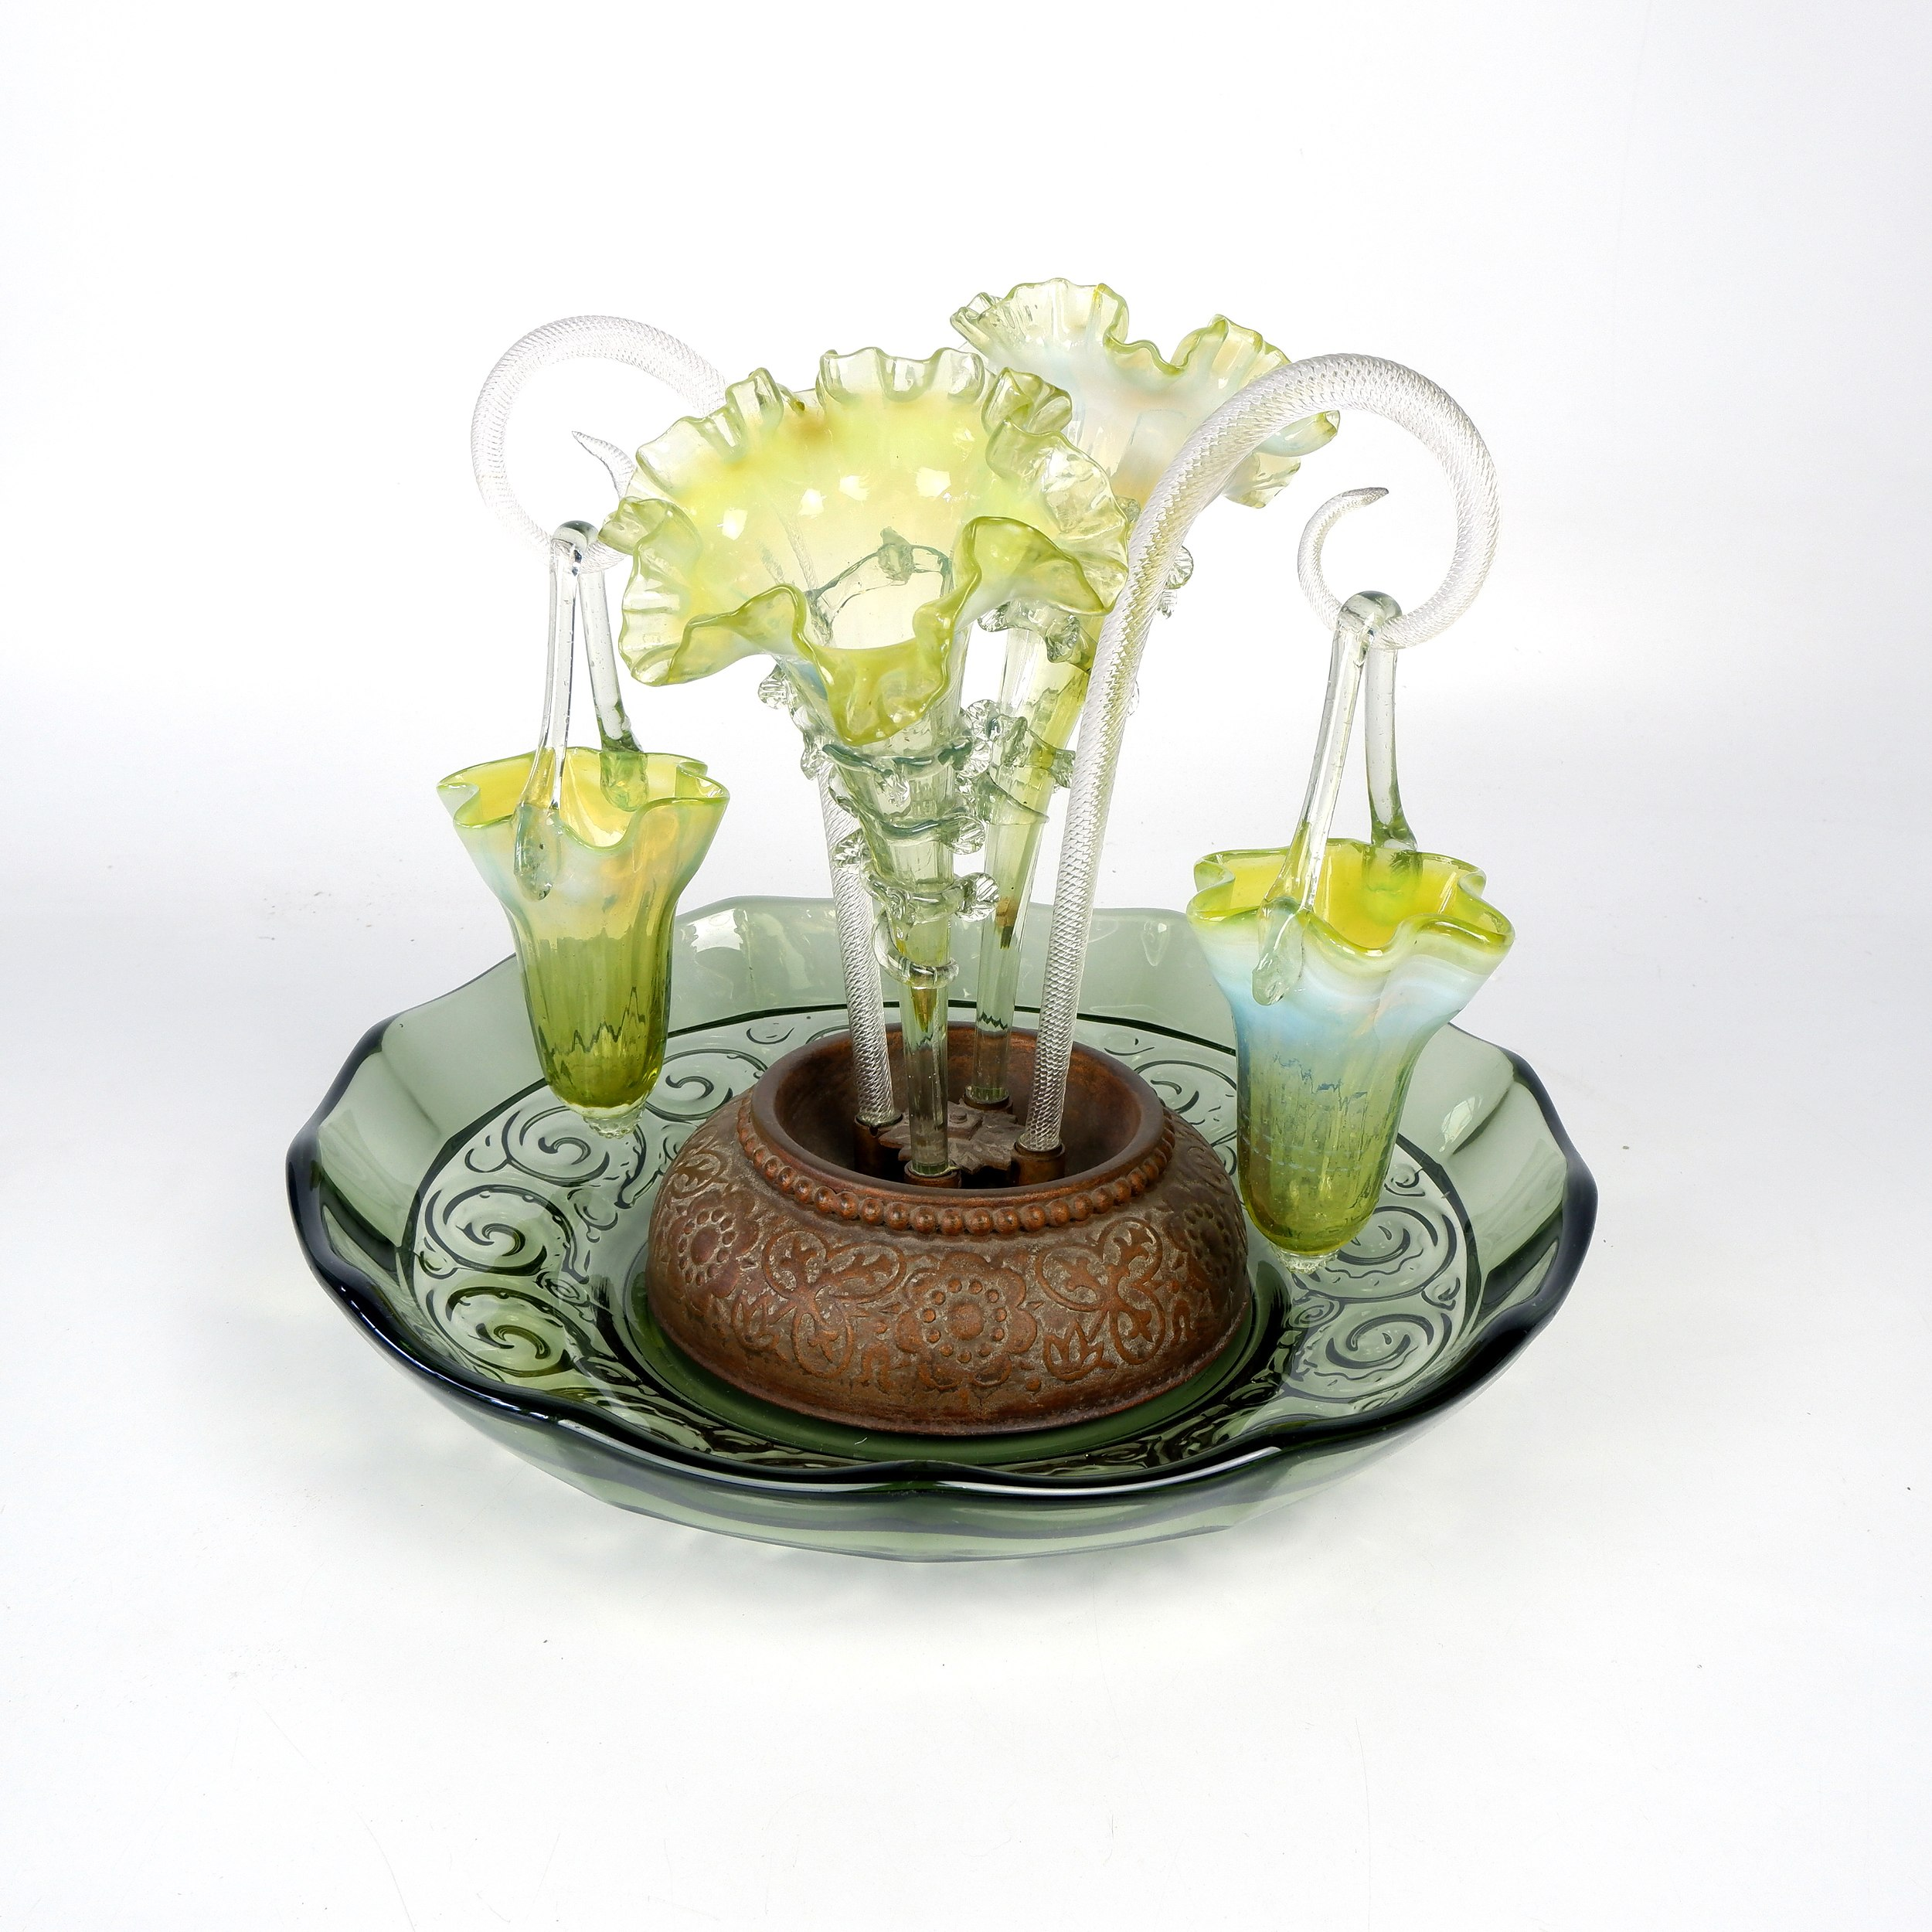 'Victorian Vaseline Glass Epergne with Rigaree Work and Two Hanging Vases, Circa 1880'